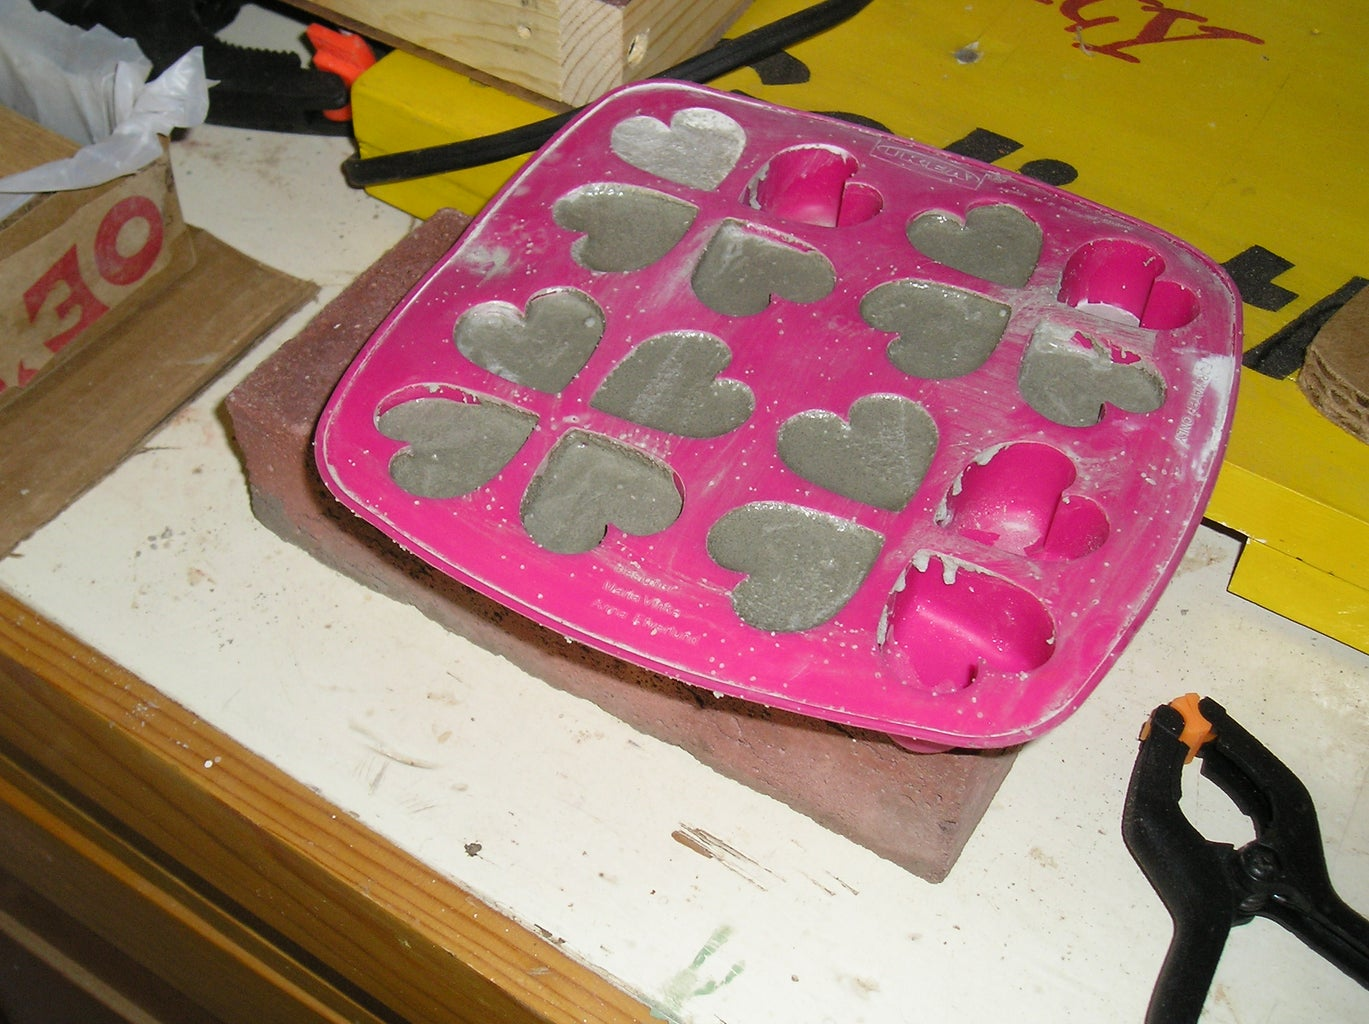 Add Mixture to Mold